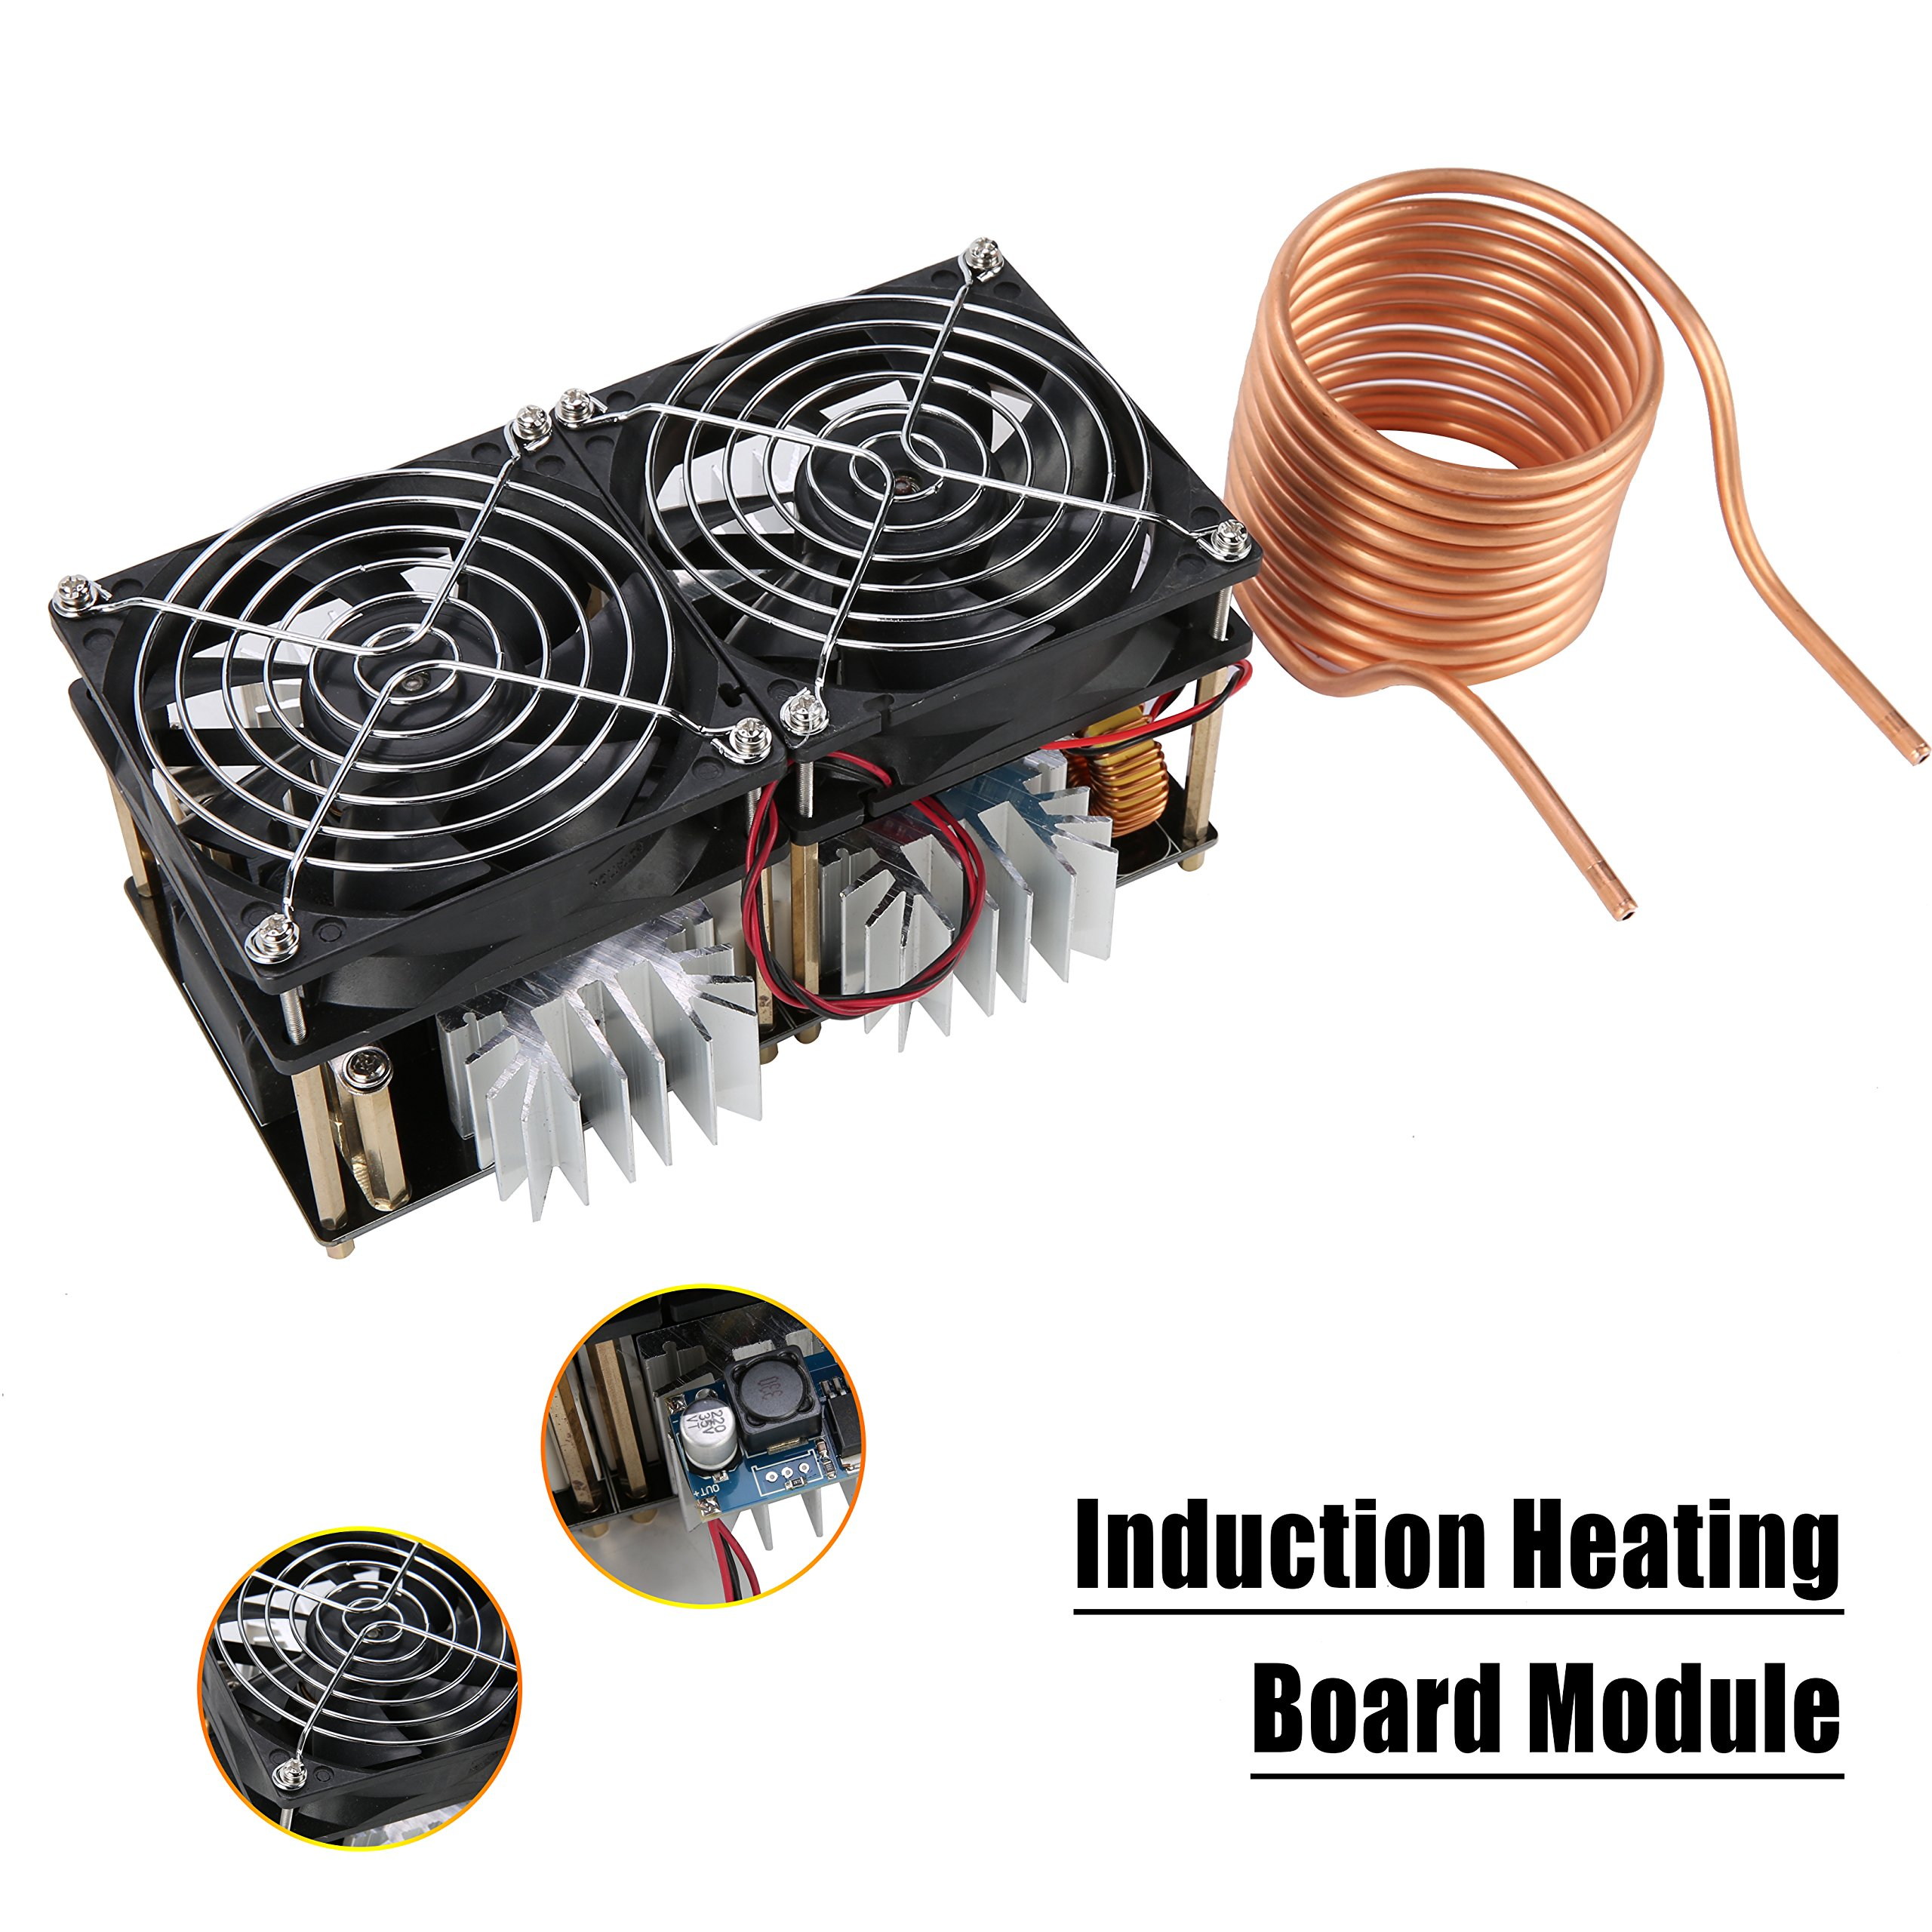 YaeCCC 40A 1800W Low Voltage Induction Heating Board Module Driver Heater